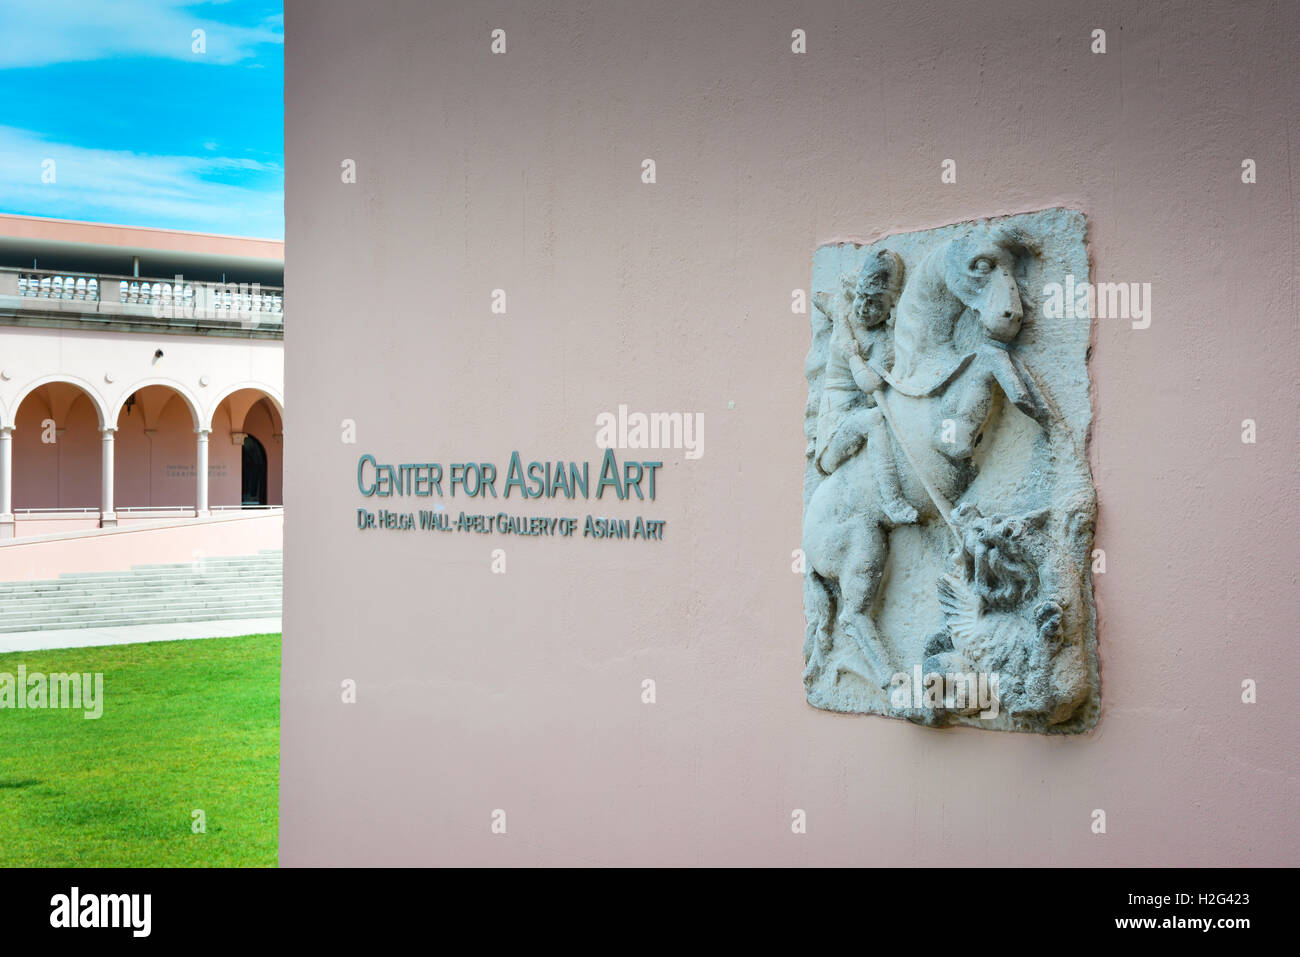 Entrance with ancient plaque to Center for Asian Art in the Dr, Helga Wall-Apelt Gallery at Ringling Art Museum, - Stock Image